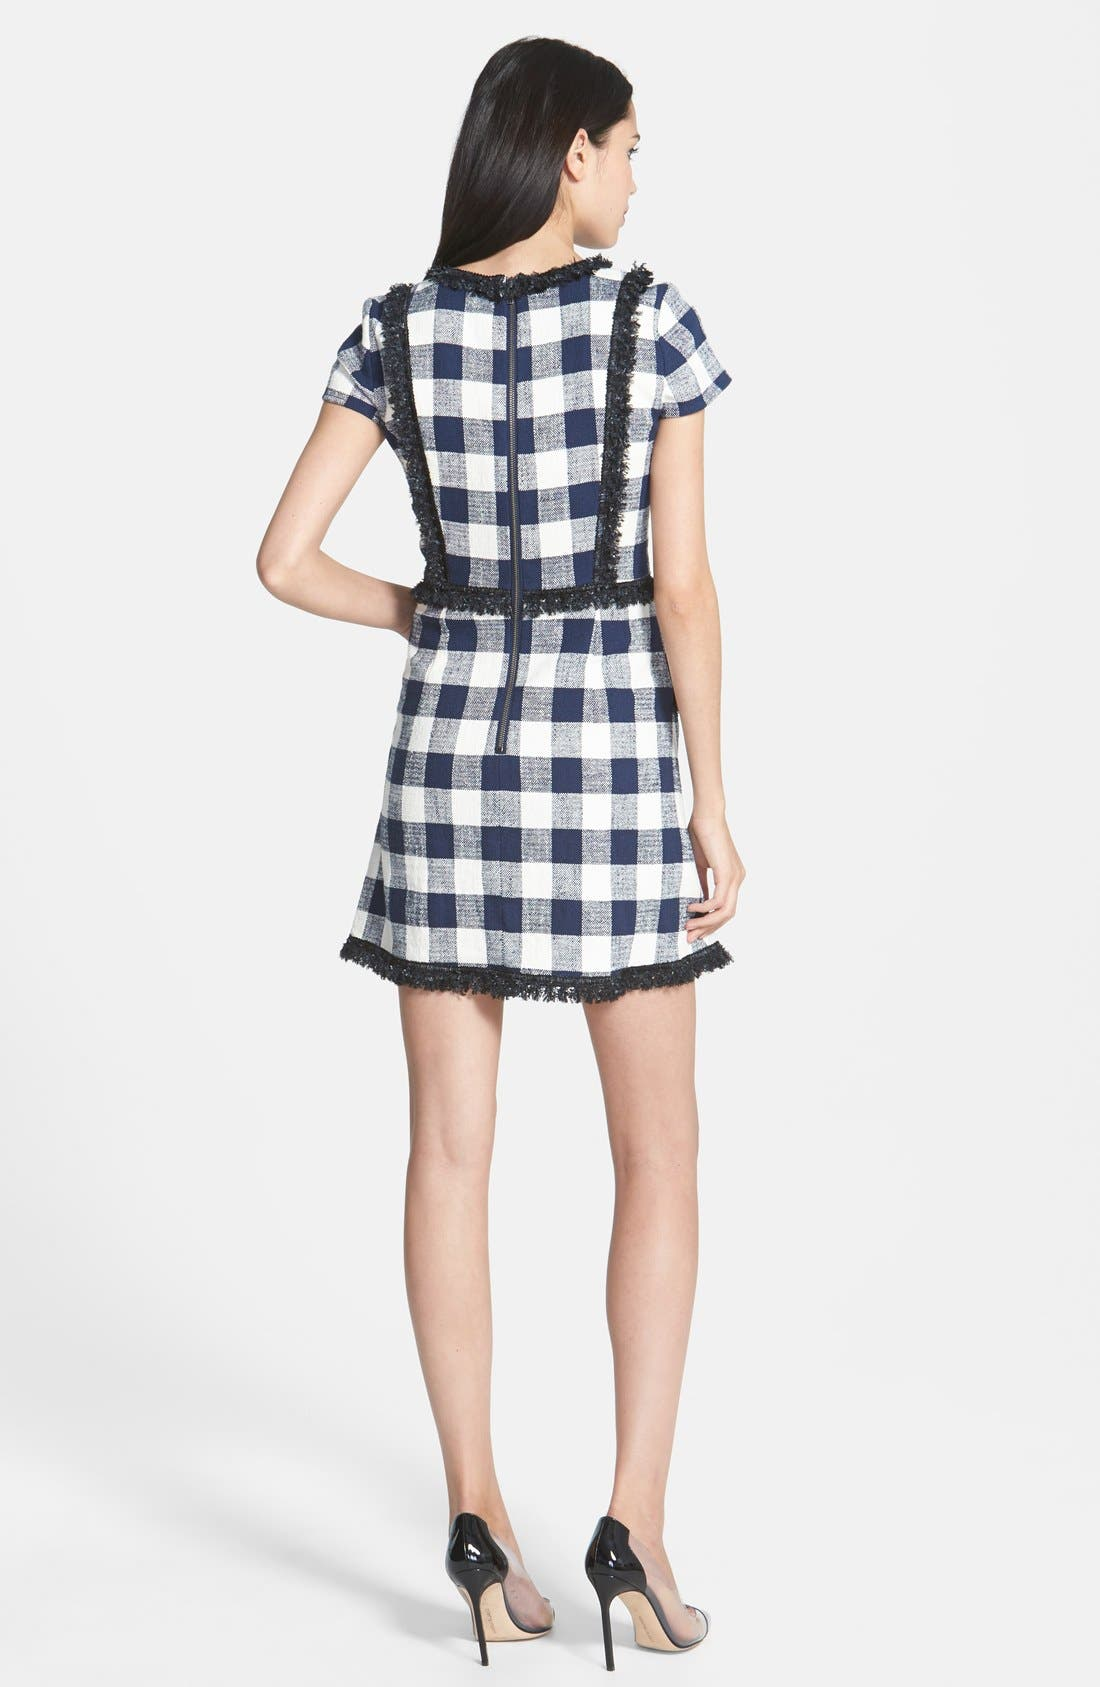 MILLY, Woven A-Line Dress, Alternate thumbnail 2, color, 420